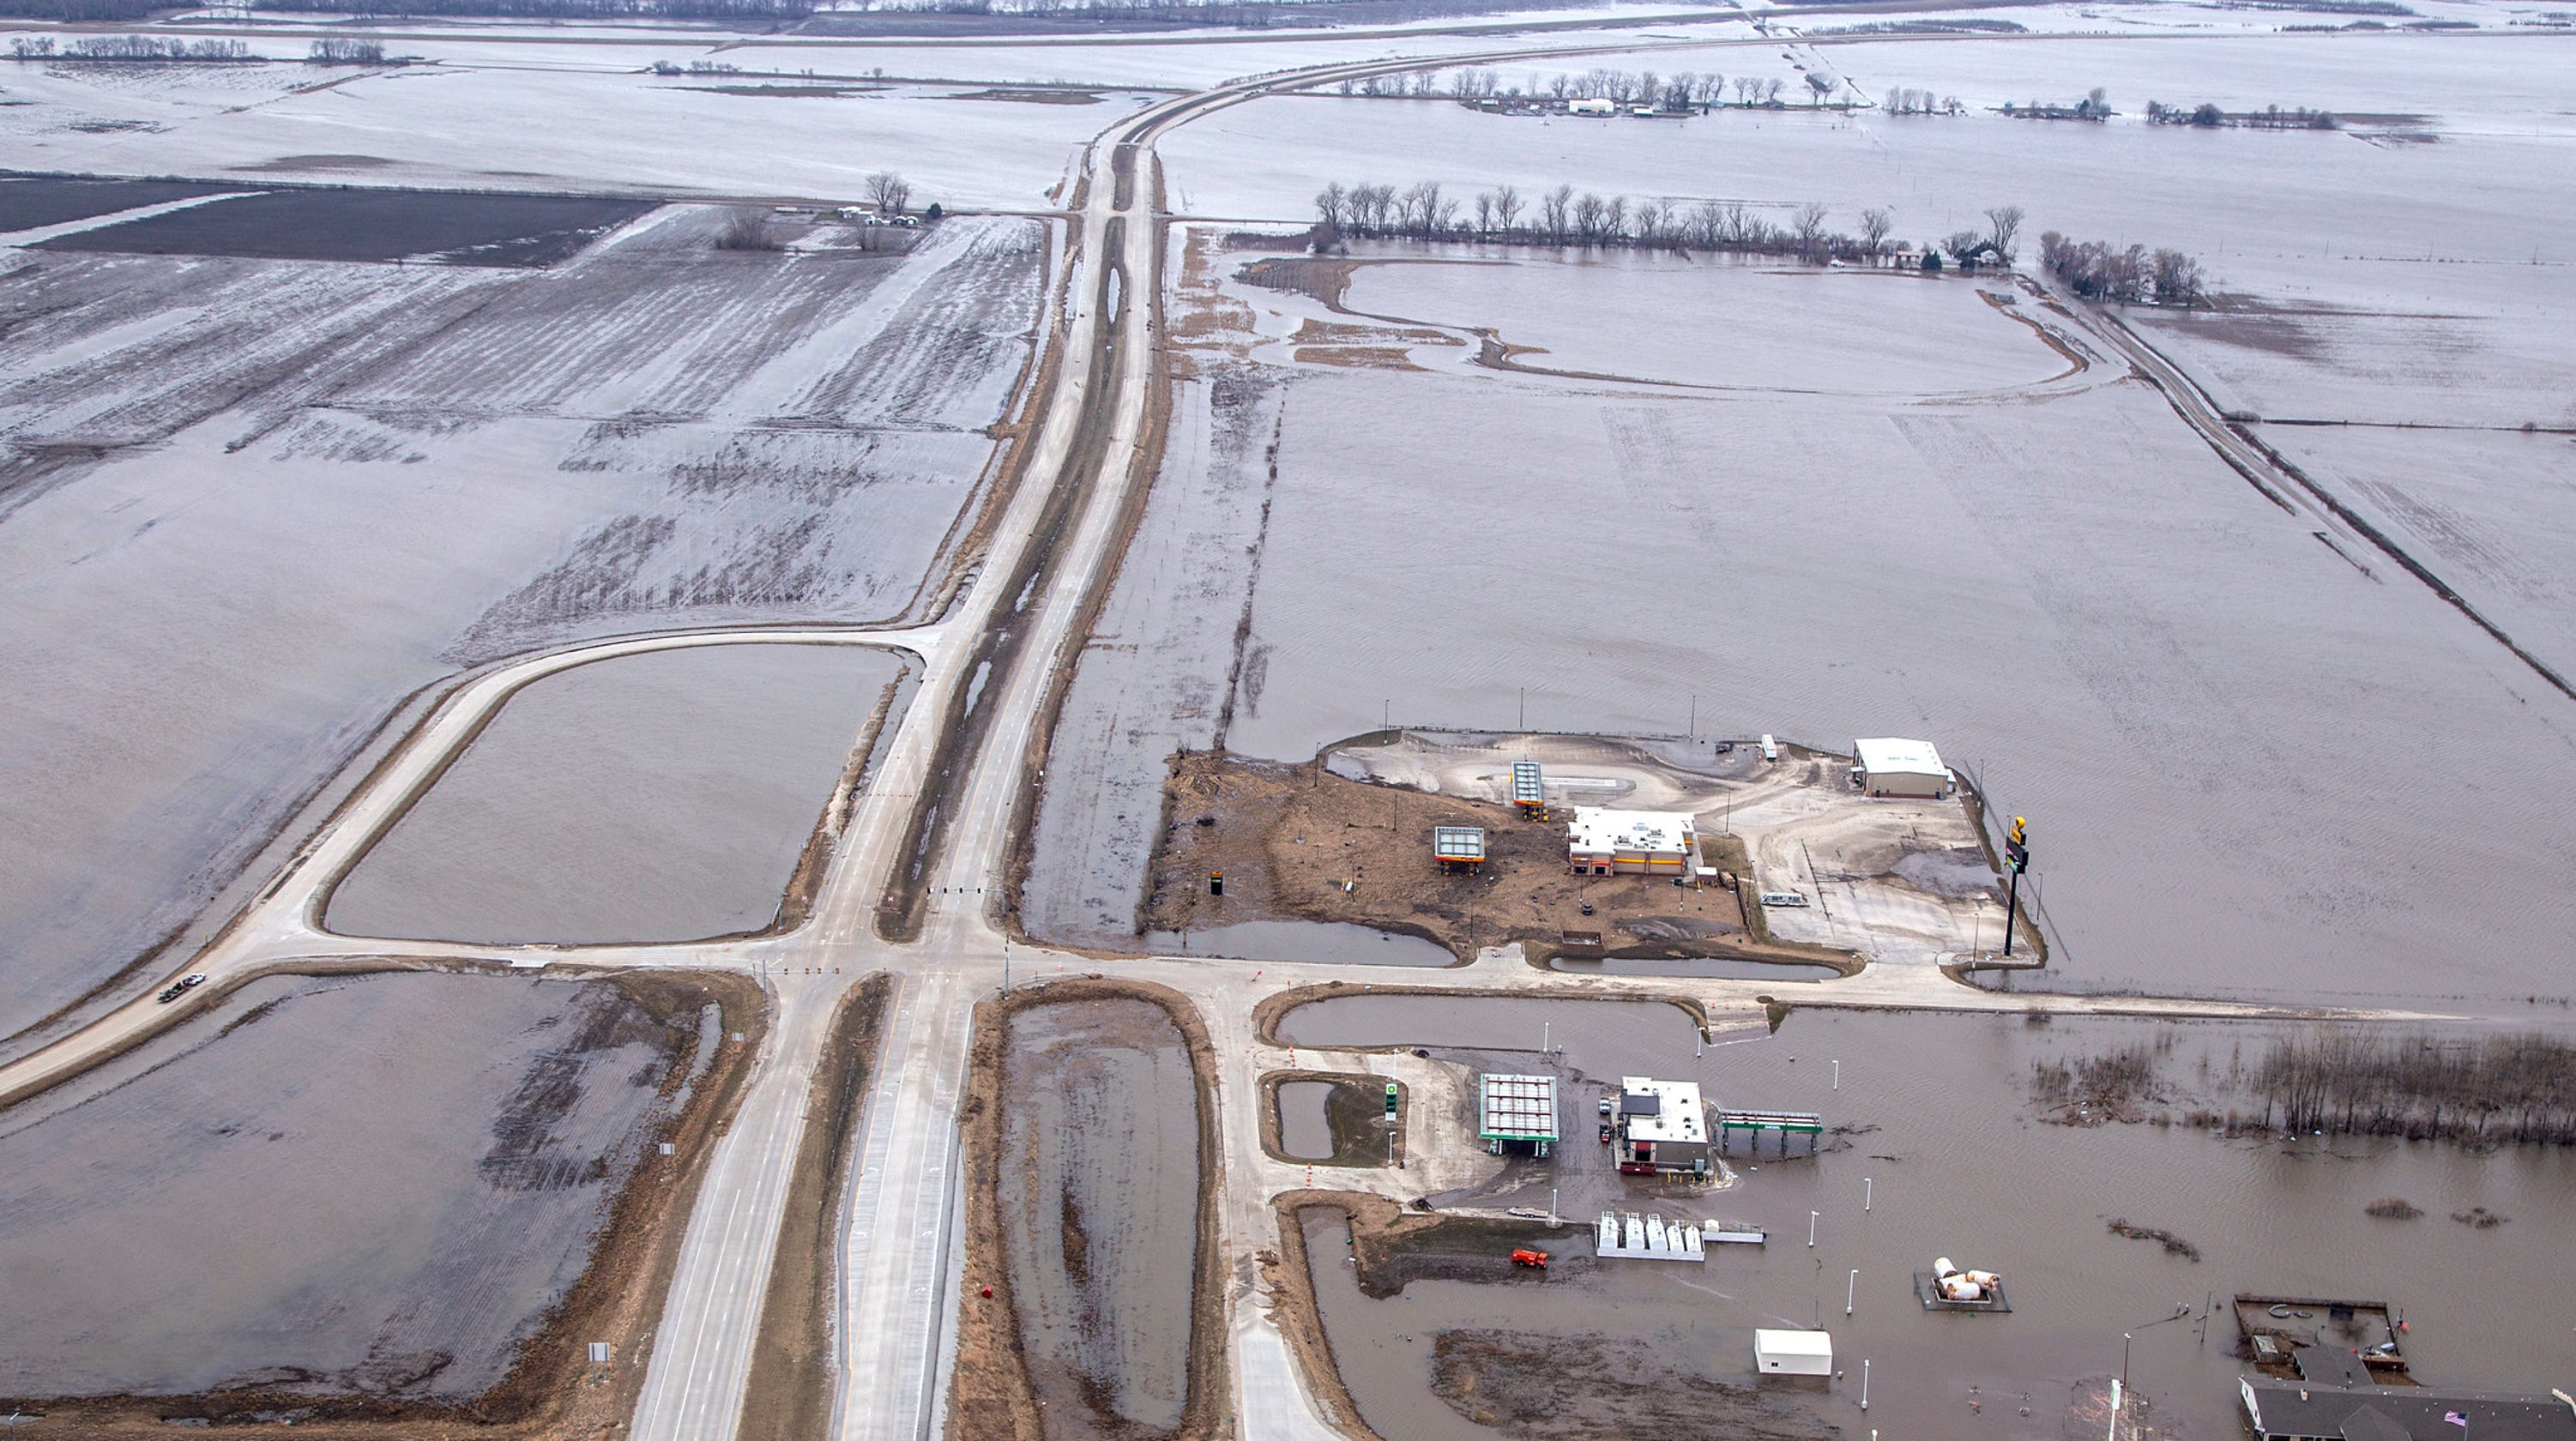 Iowa flooding 2019: Interstate 29 closed in Iowa, Missouri